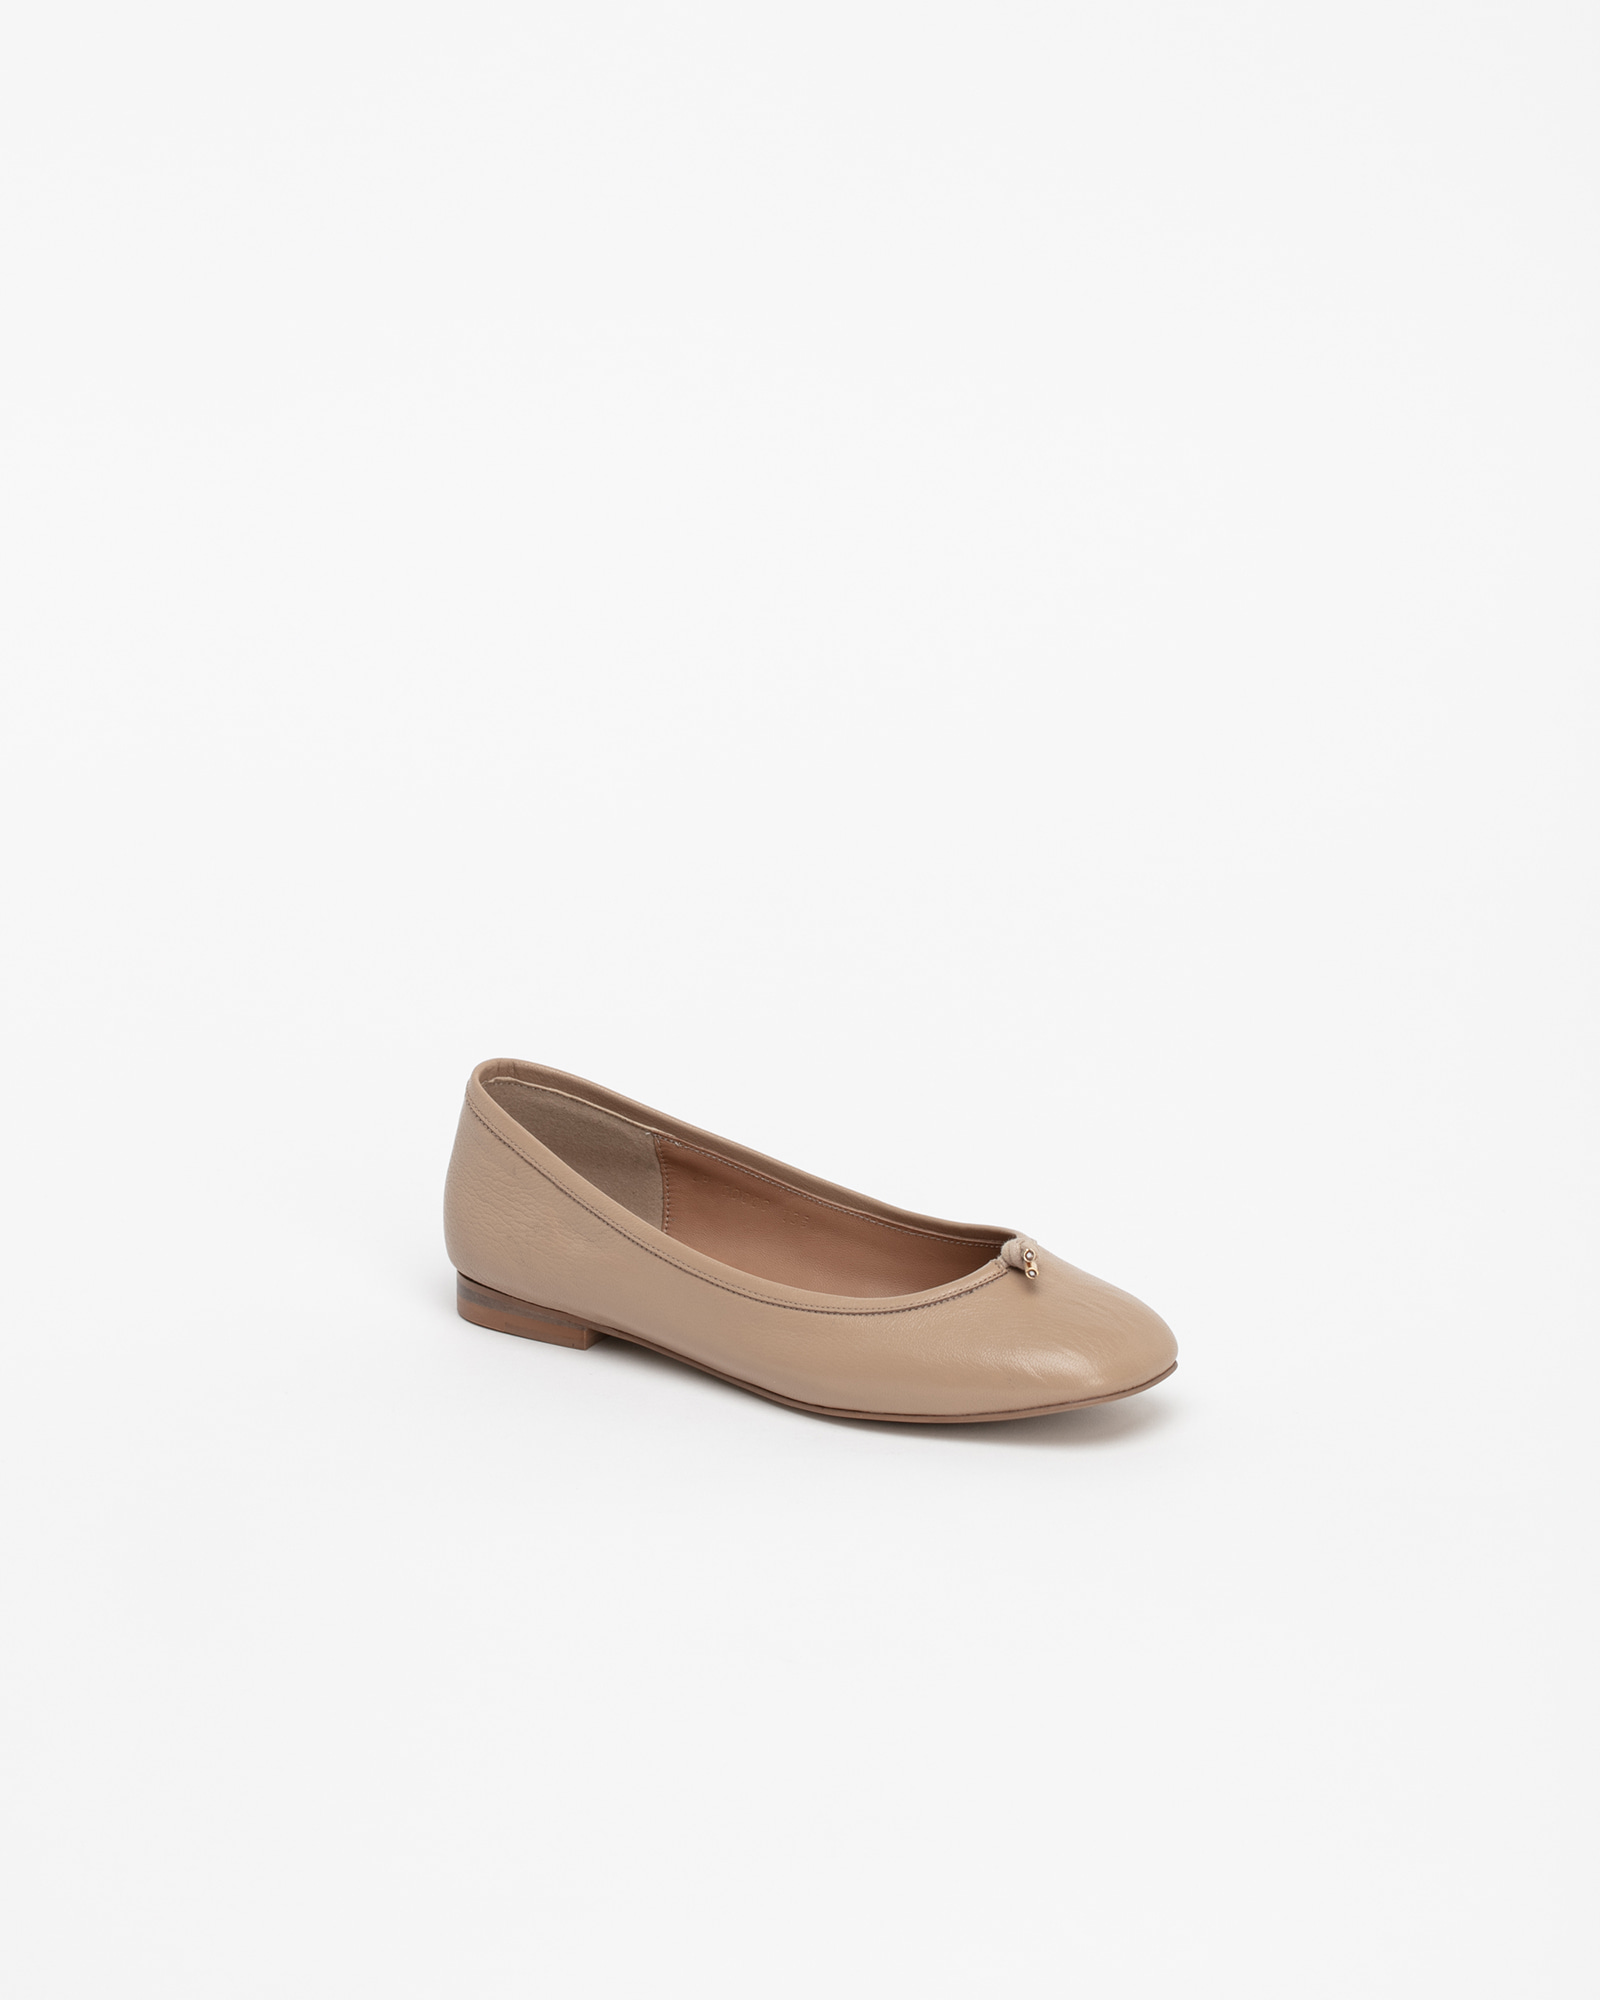 Meringue Soft Flat Shoes in Beige